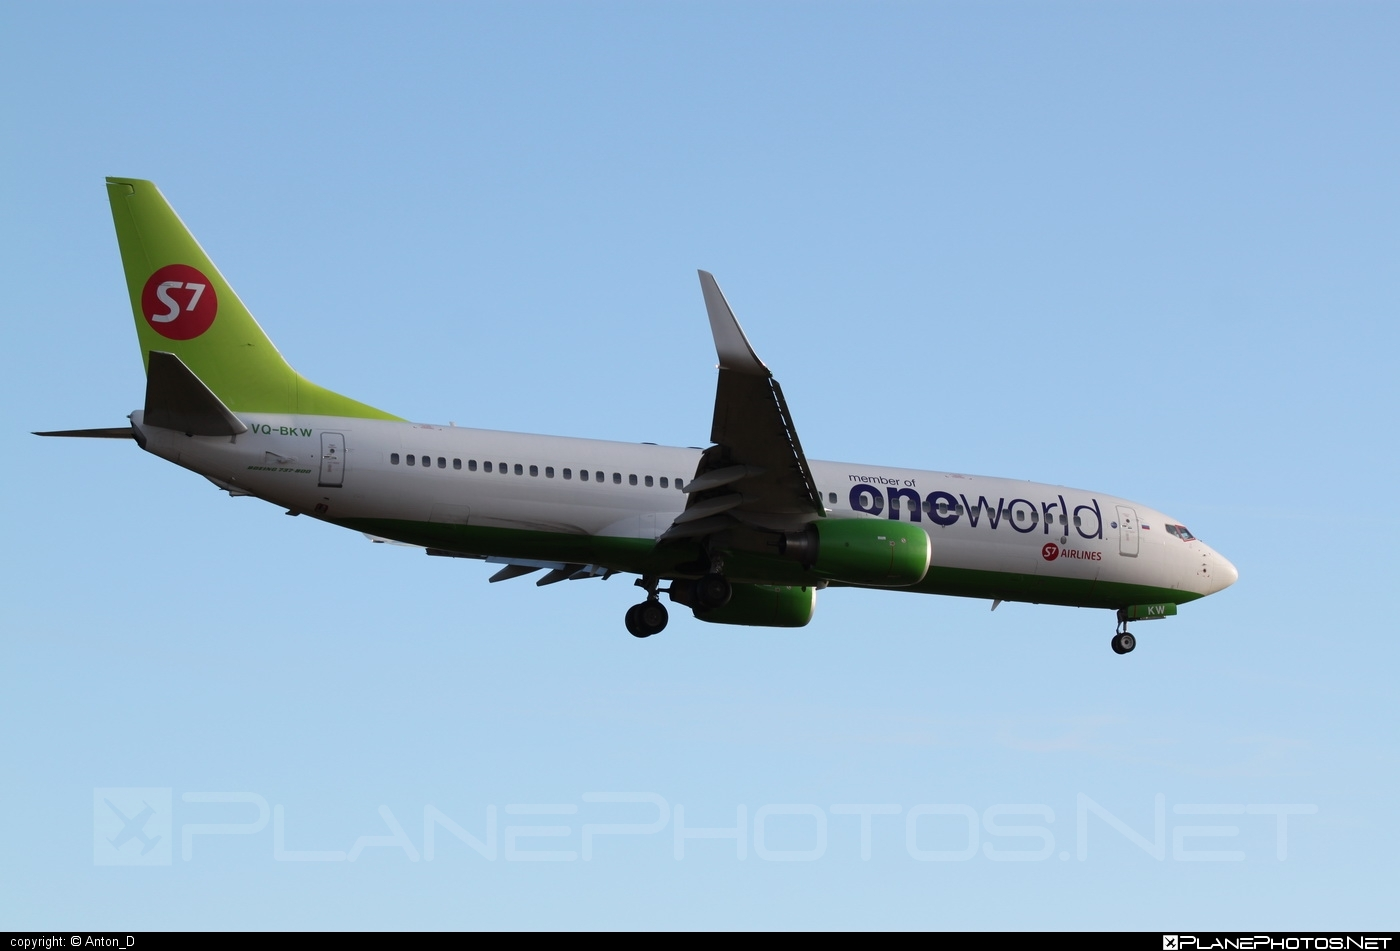 Boeing 737-800 - VQ-BKW operated by S7 Airlines #b737 #b737nextgen #b737ng #boeing #boeing737 #oneworld